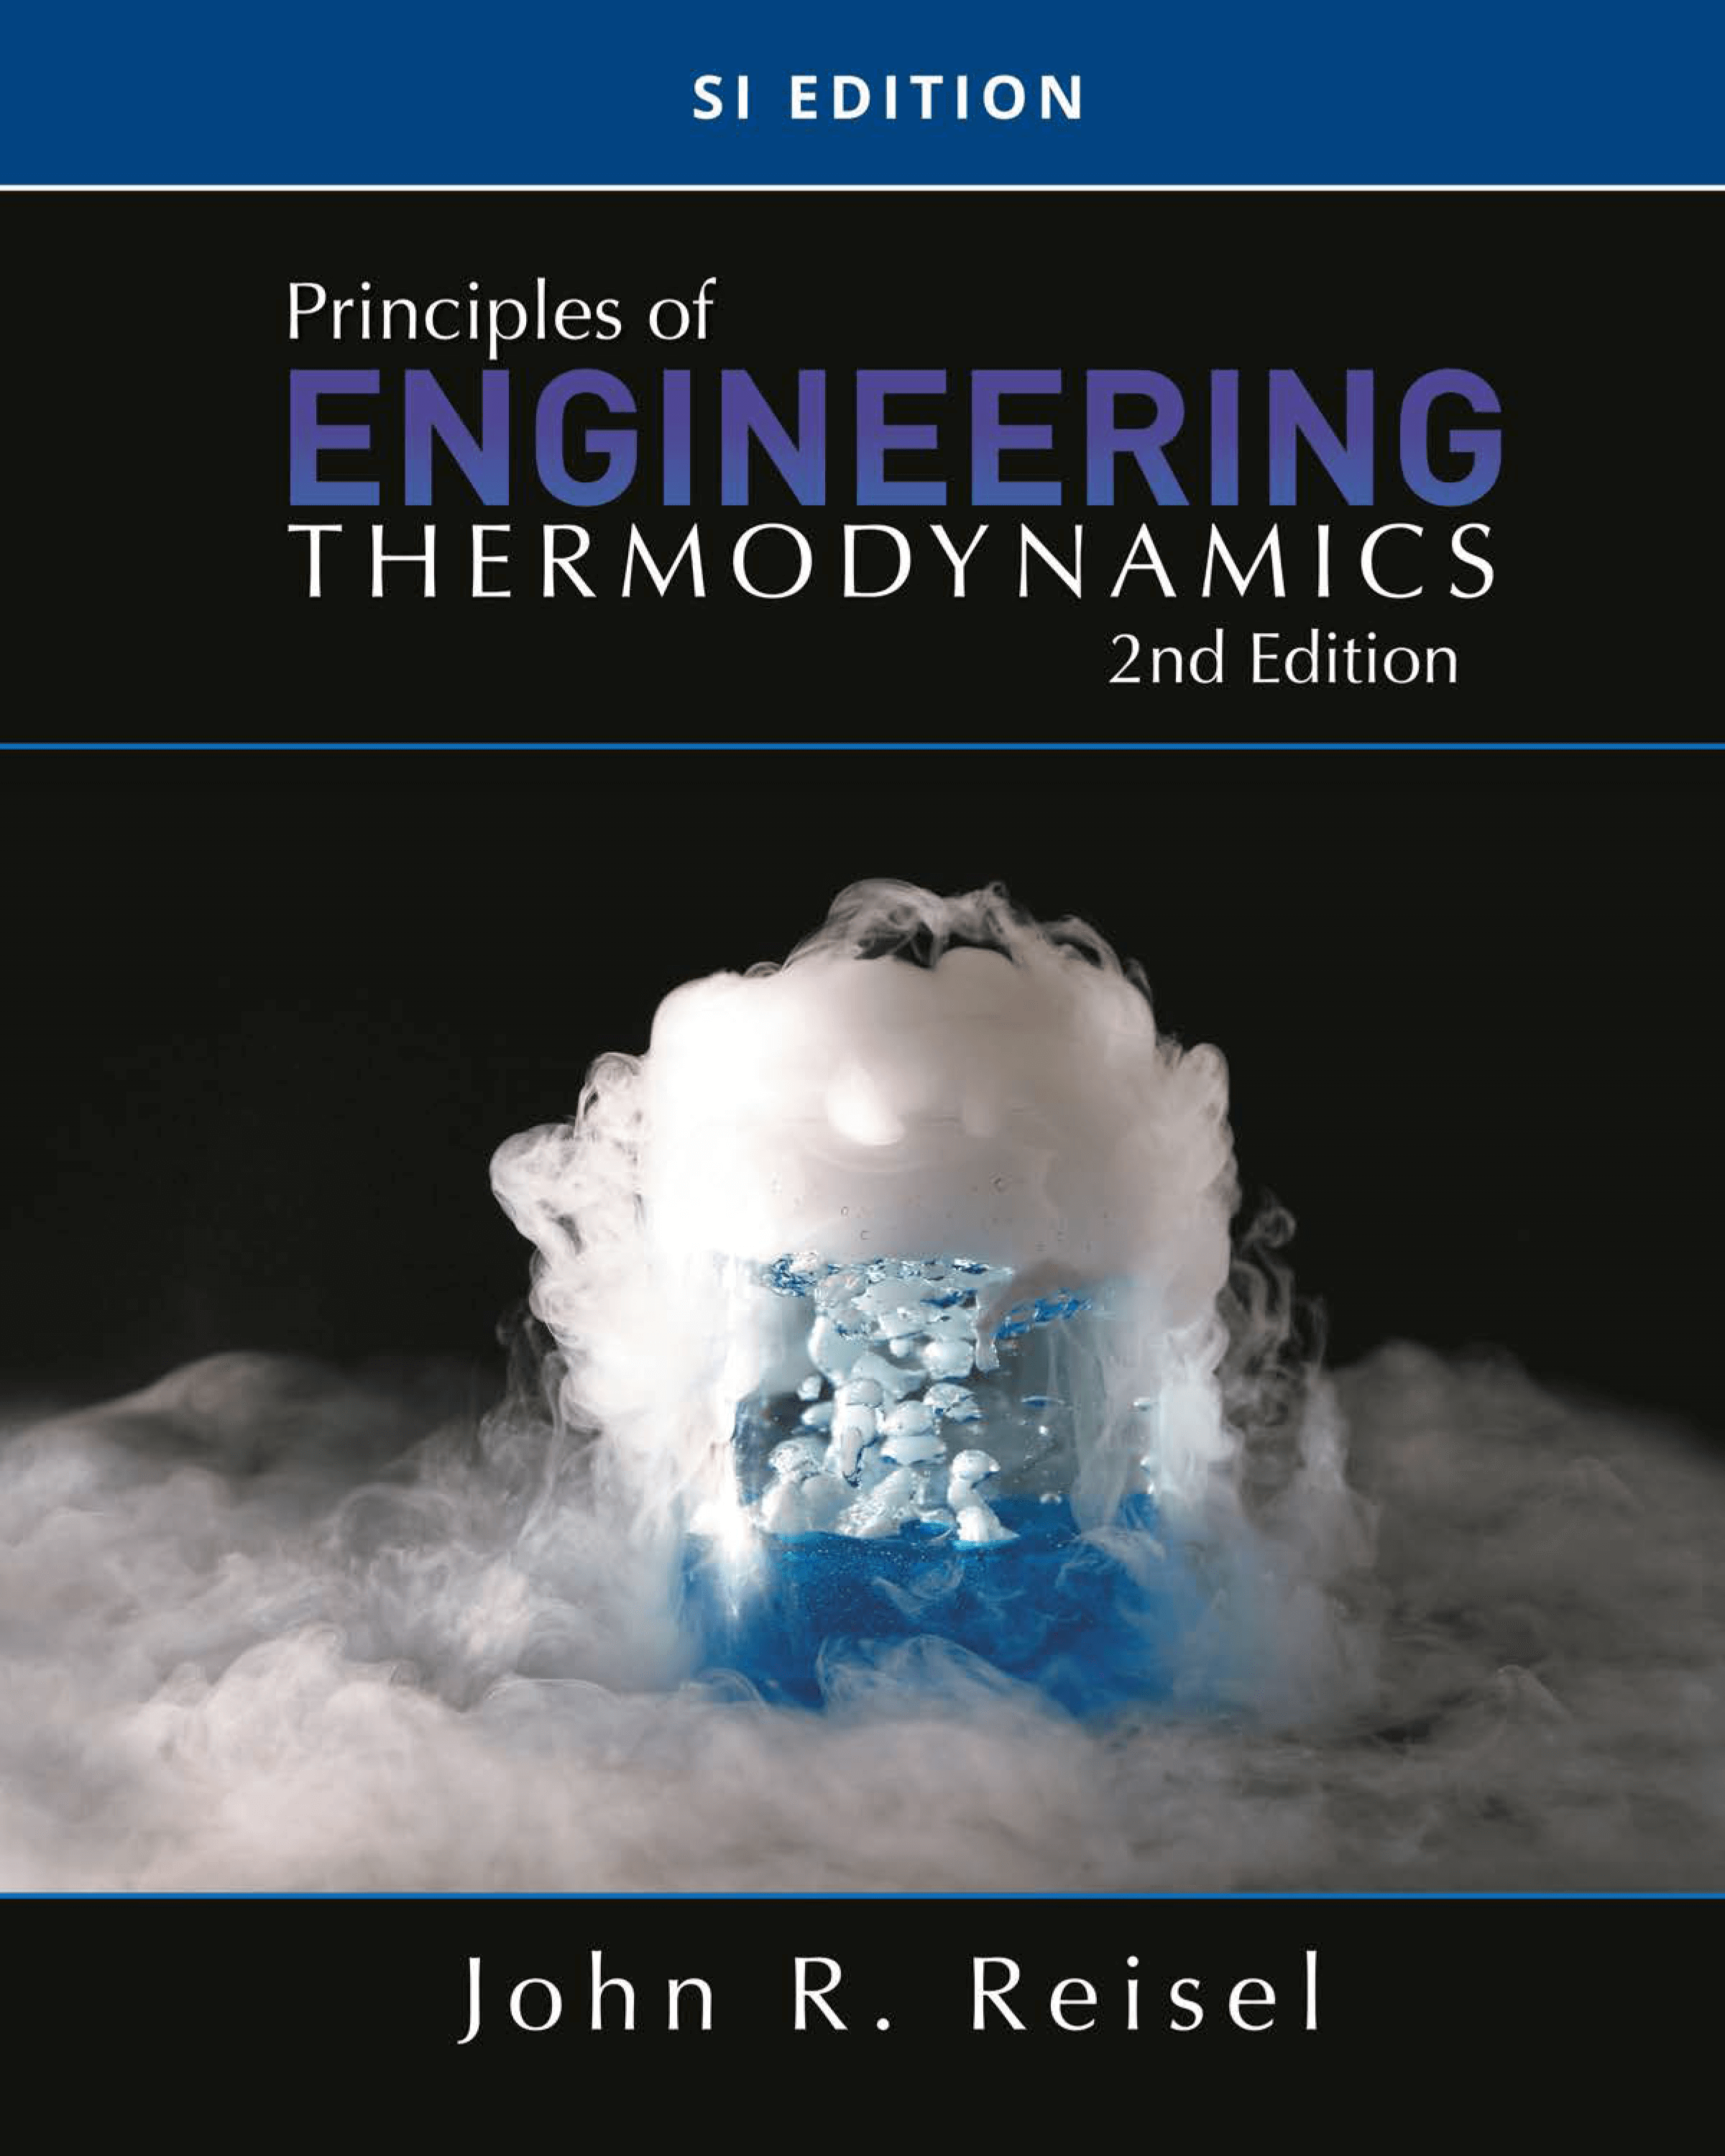 Principles of Engineering Thermodynamics SI Edition Second Edition